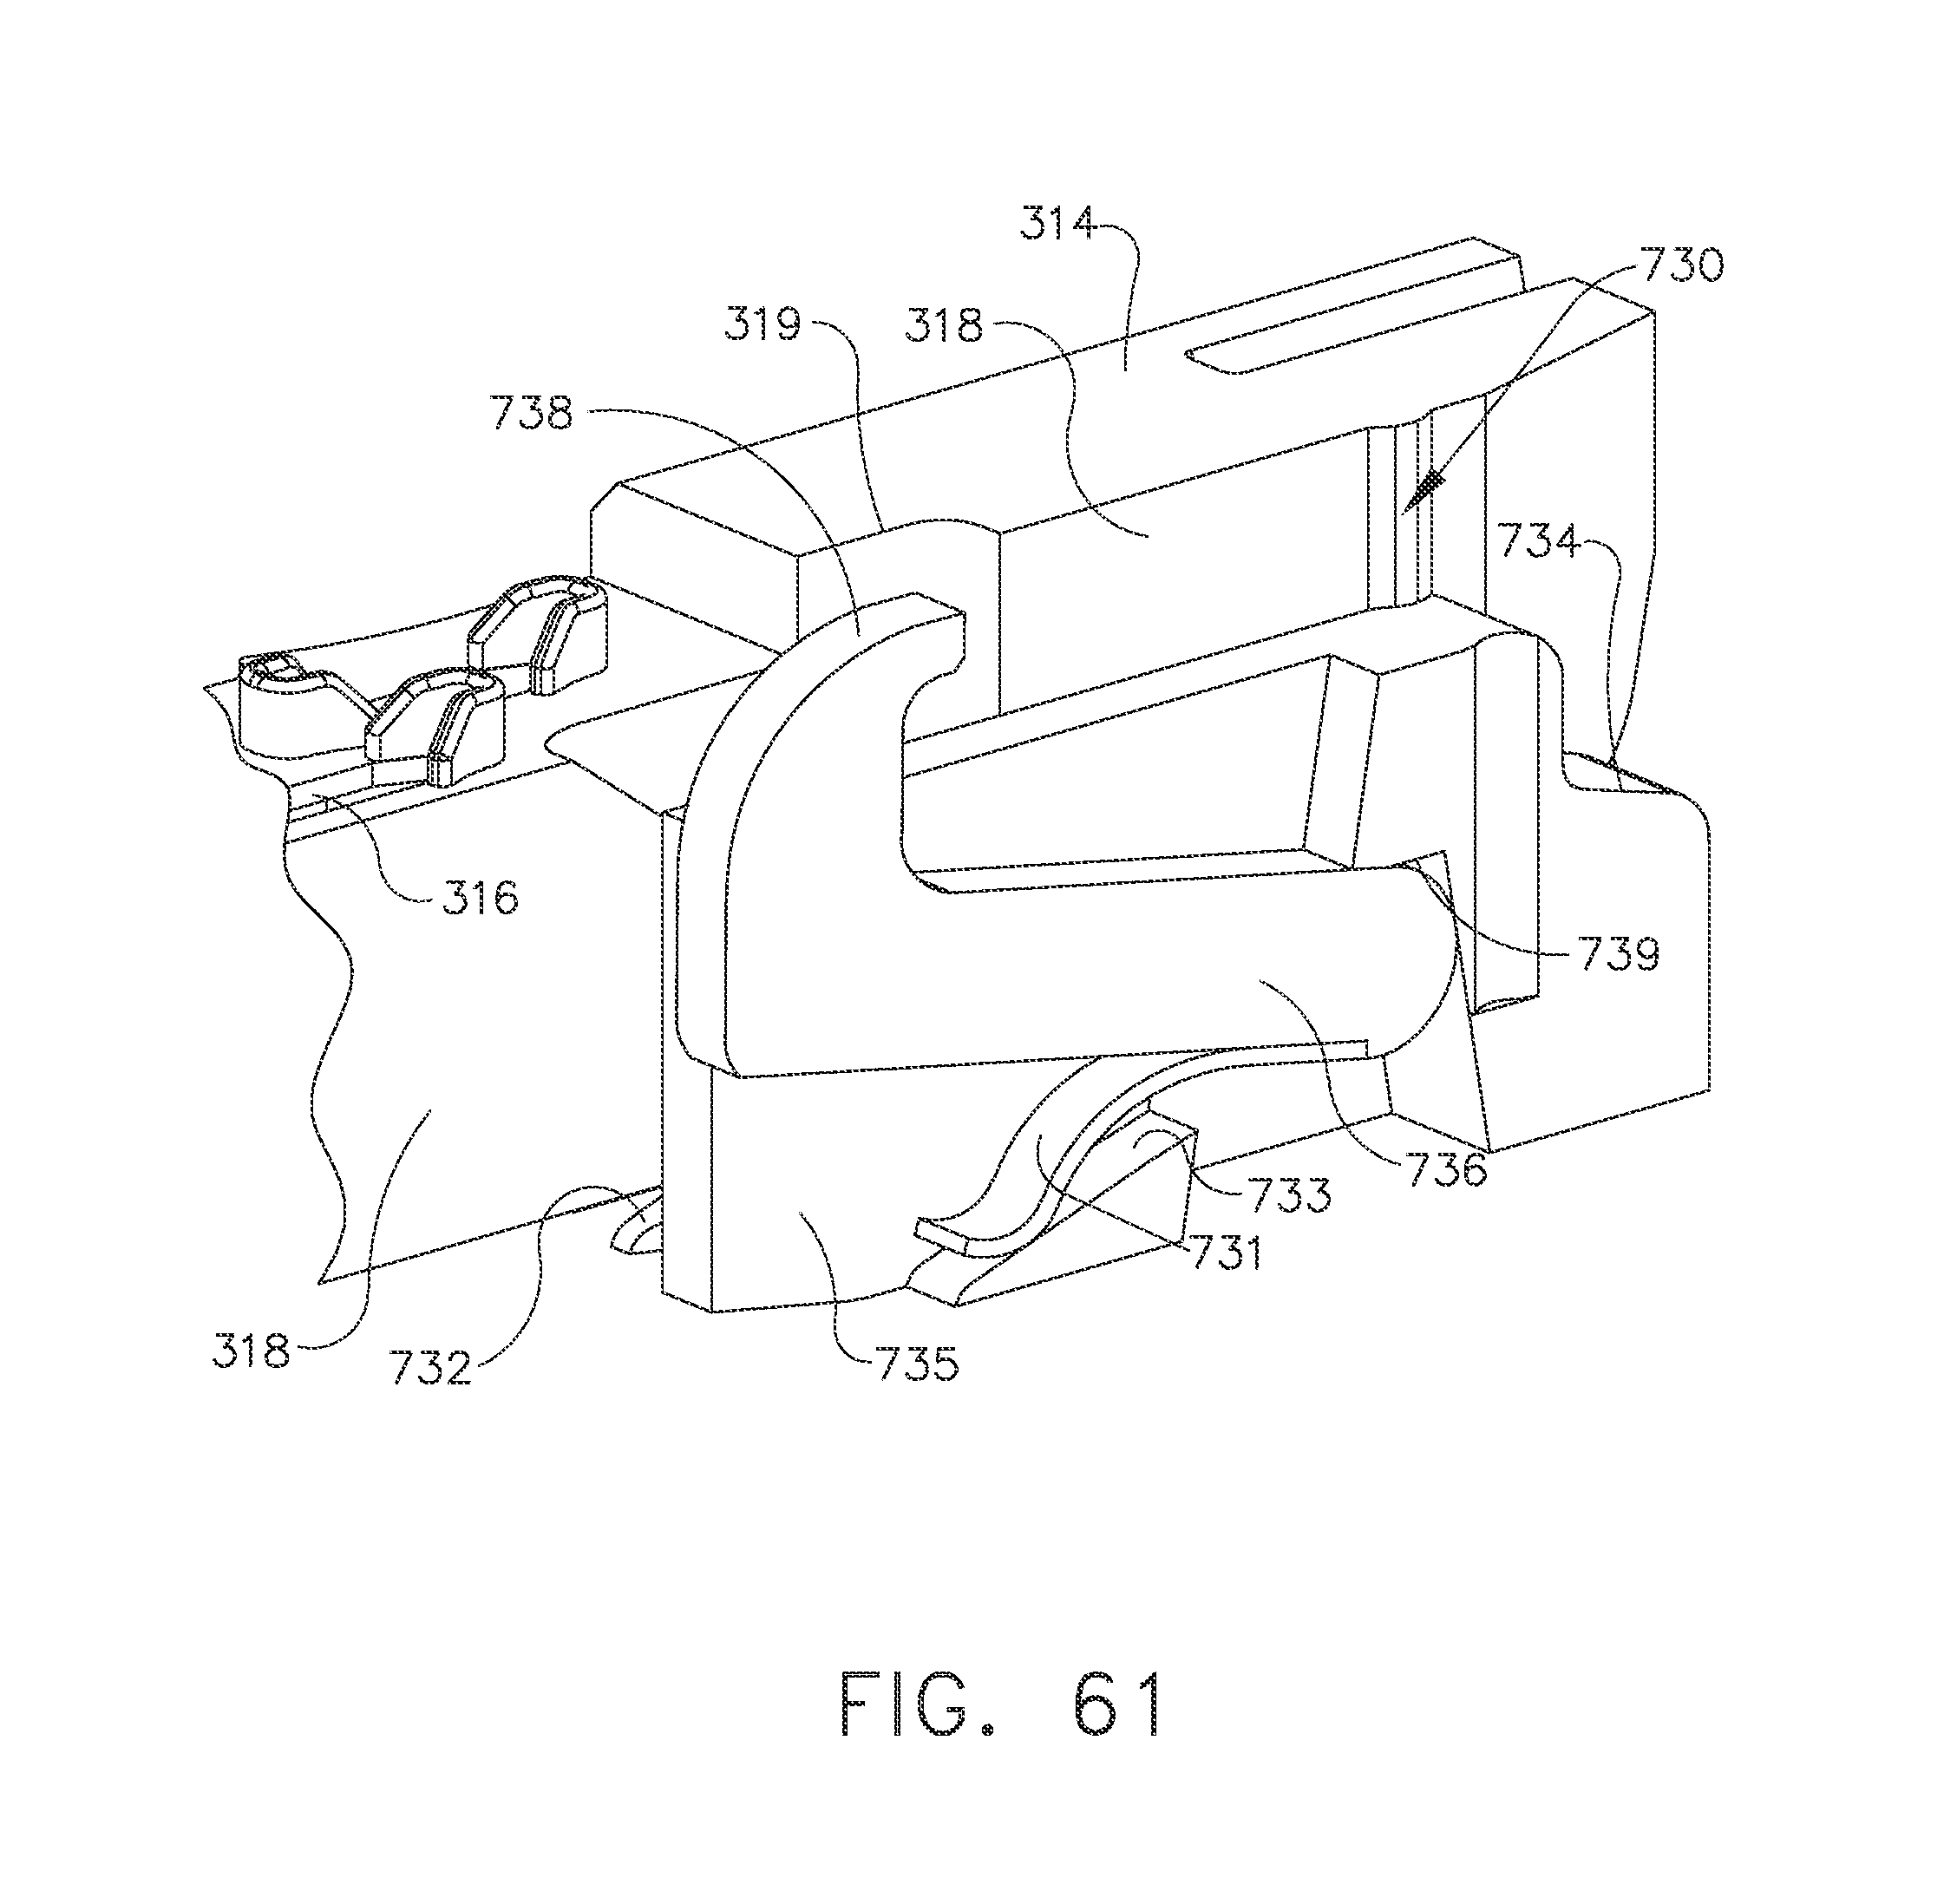 Us20140166726a1 Staple Cartridge Including A Barbed Sony Xperia Neo L Circuit Diagram Google Patents